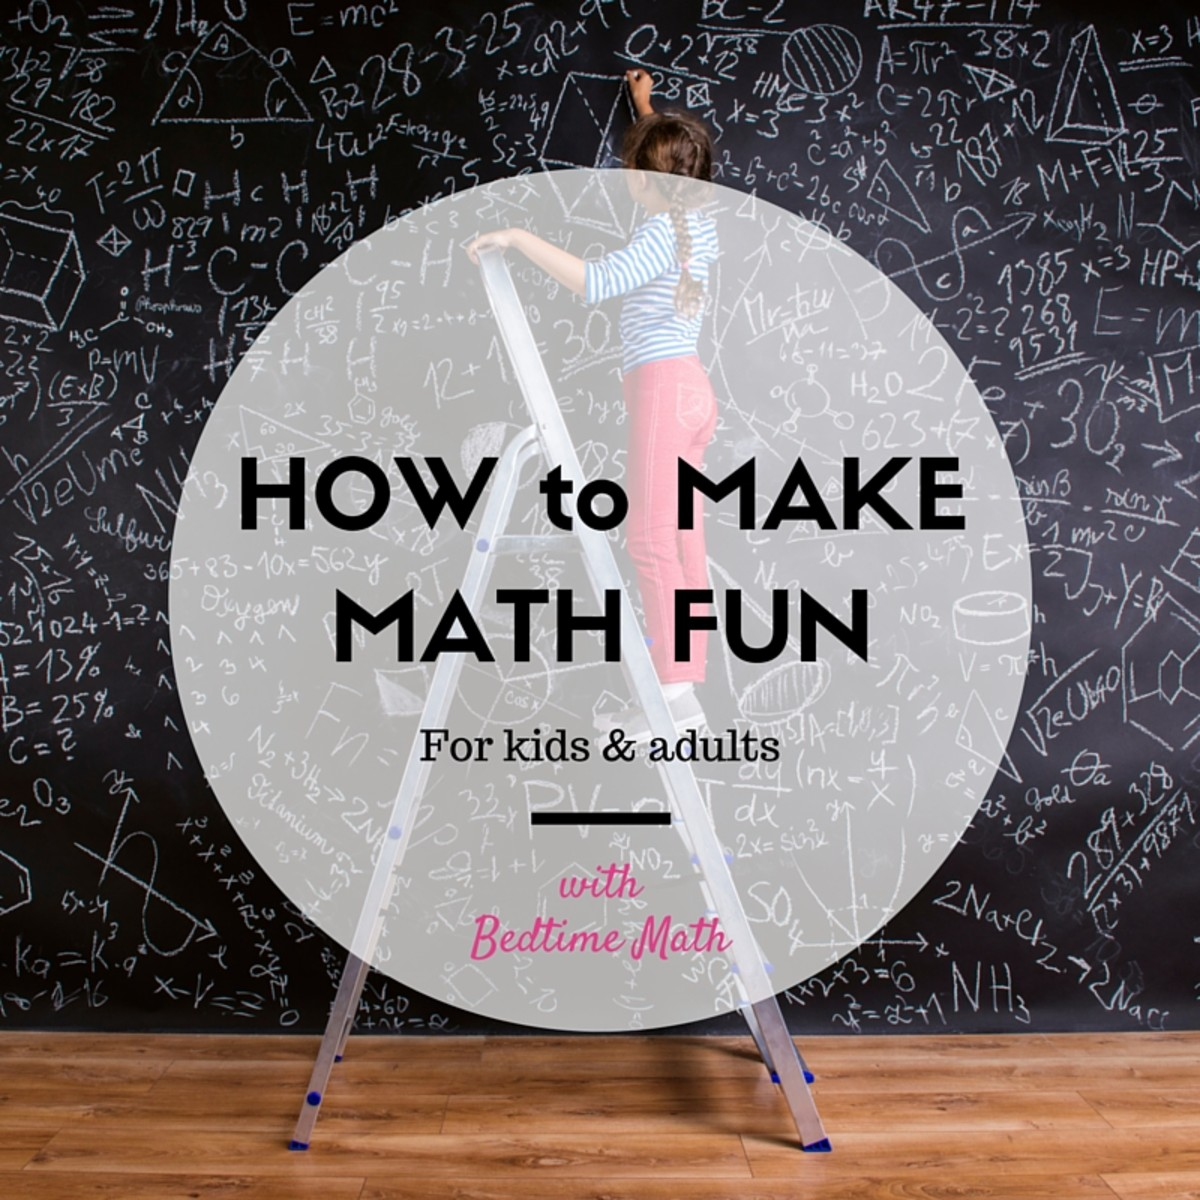 How to Make Math Fun with Bedtime Math App